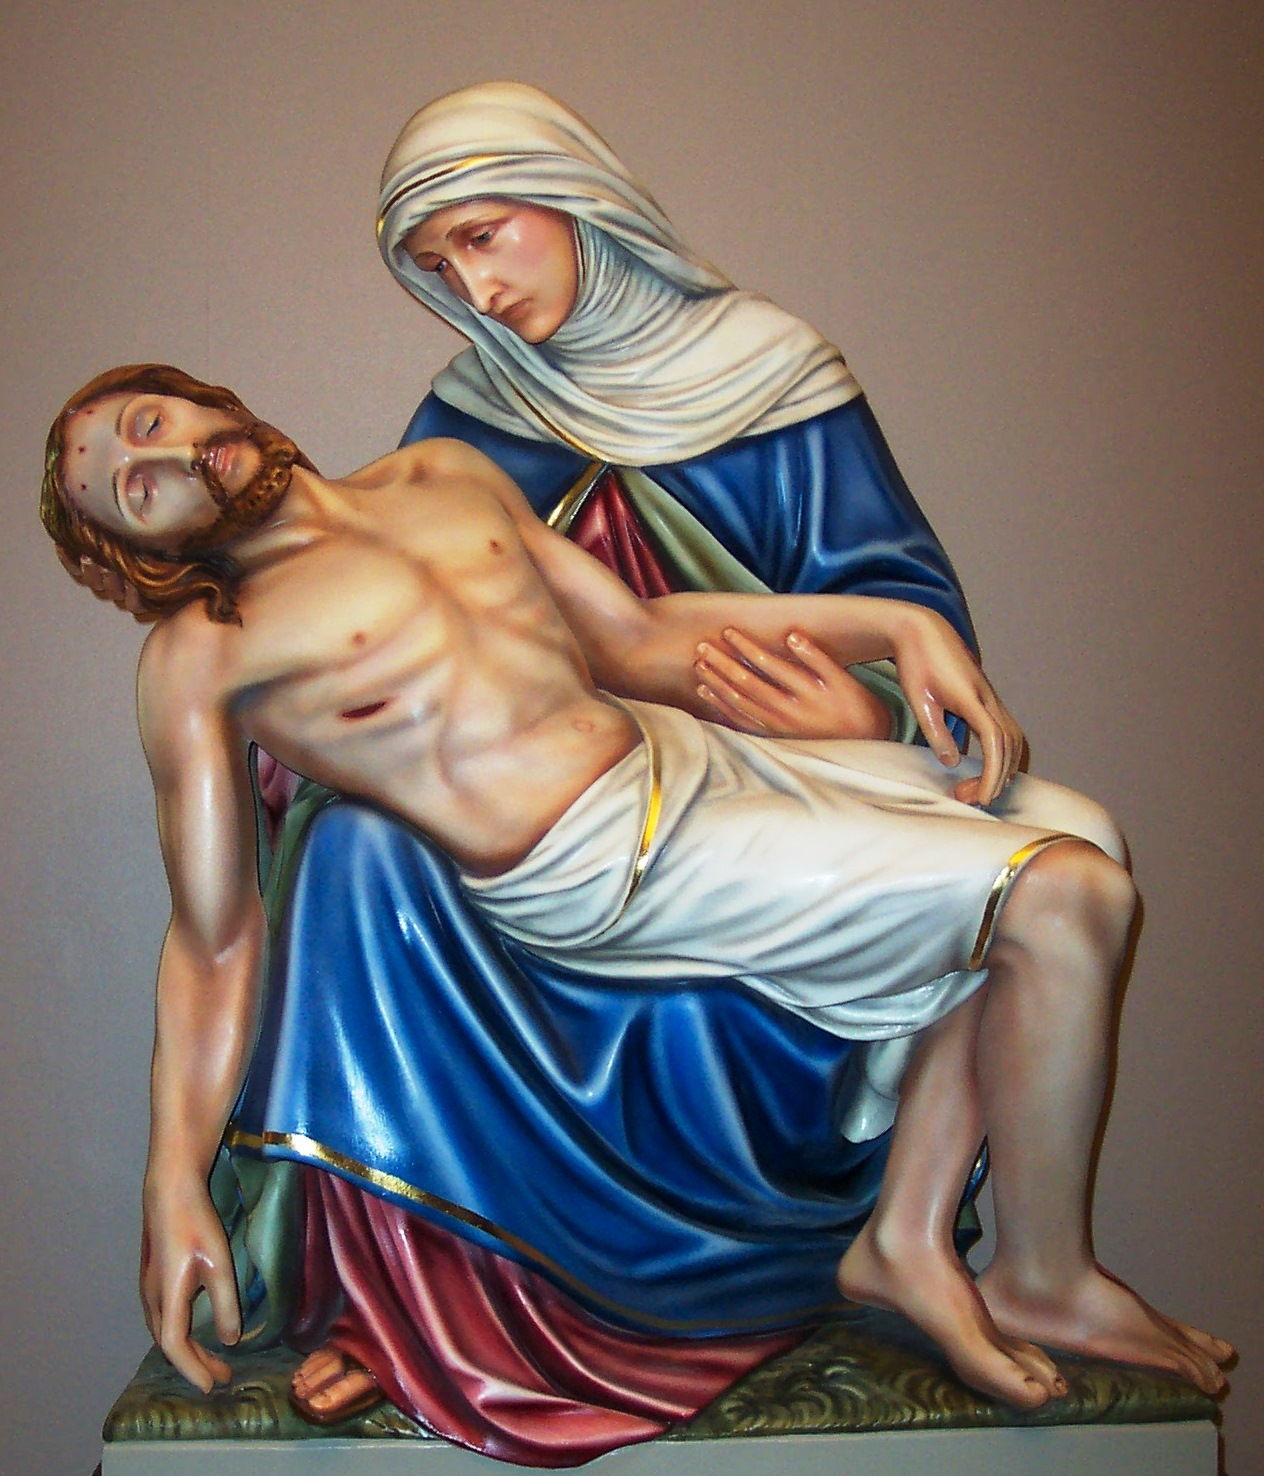 This is the exquisitely restored Pieta Statue at Saint Wenceslaus Church in Saint Louis, Missouri.